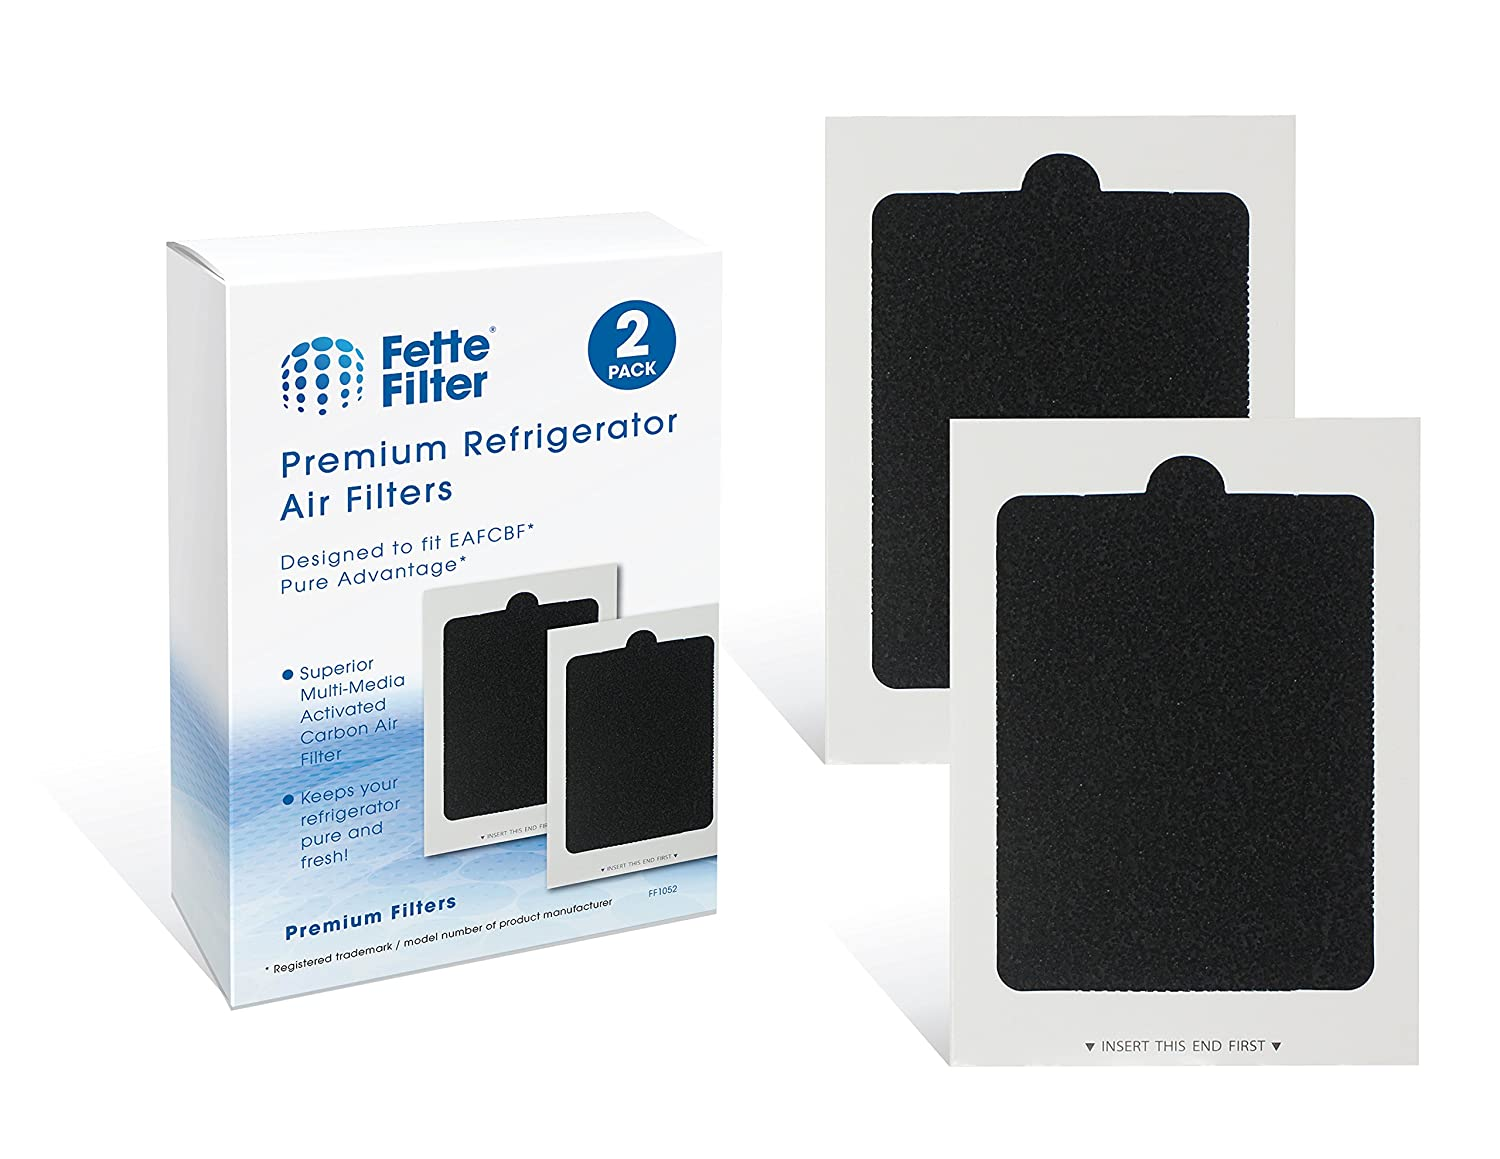 Fette Filter - Refrigerator Air Filters Compatible with Part # EAFCBF Air Filter (2-Pack)